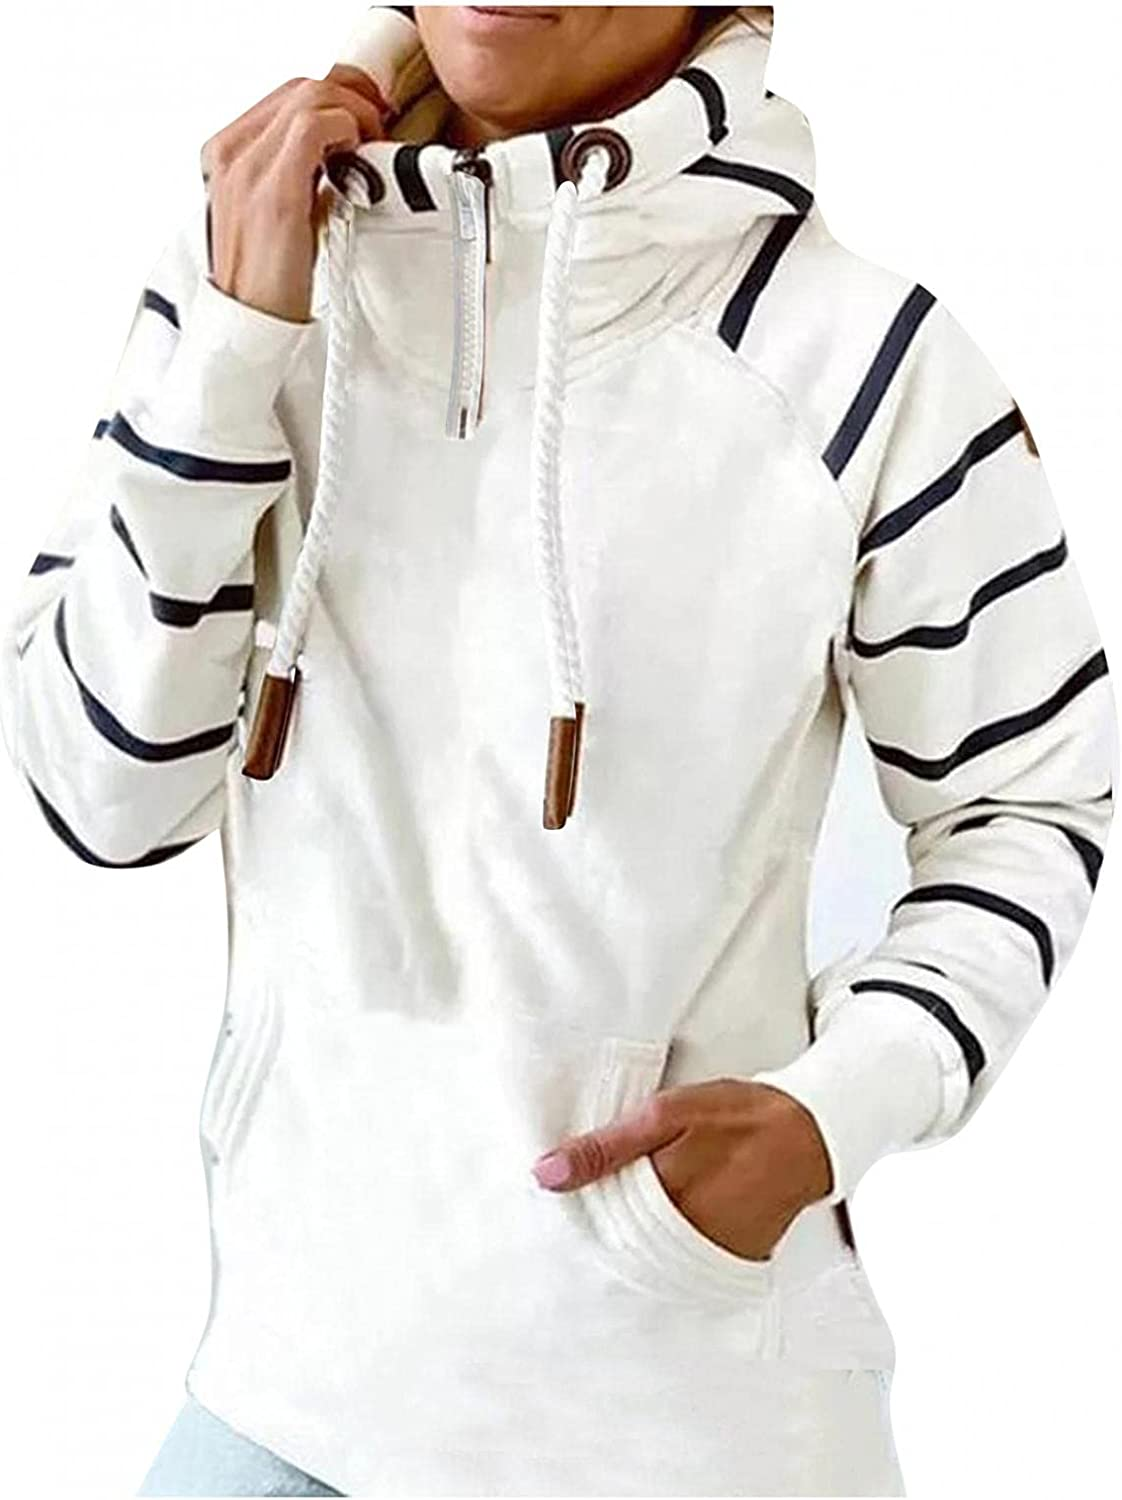 UOCUFY Hoodies for Women Zip Up,Lightweight Turtle Neck Pocket Sweatshirts Long Sleeve Pullover Stitching Printed Hooded